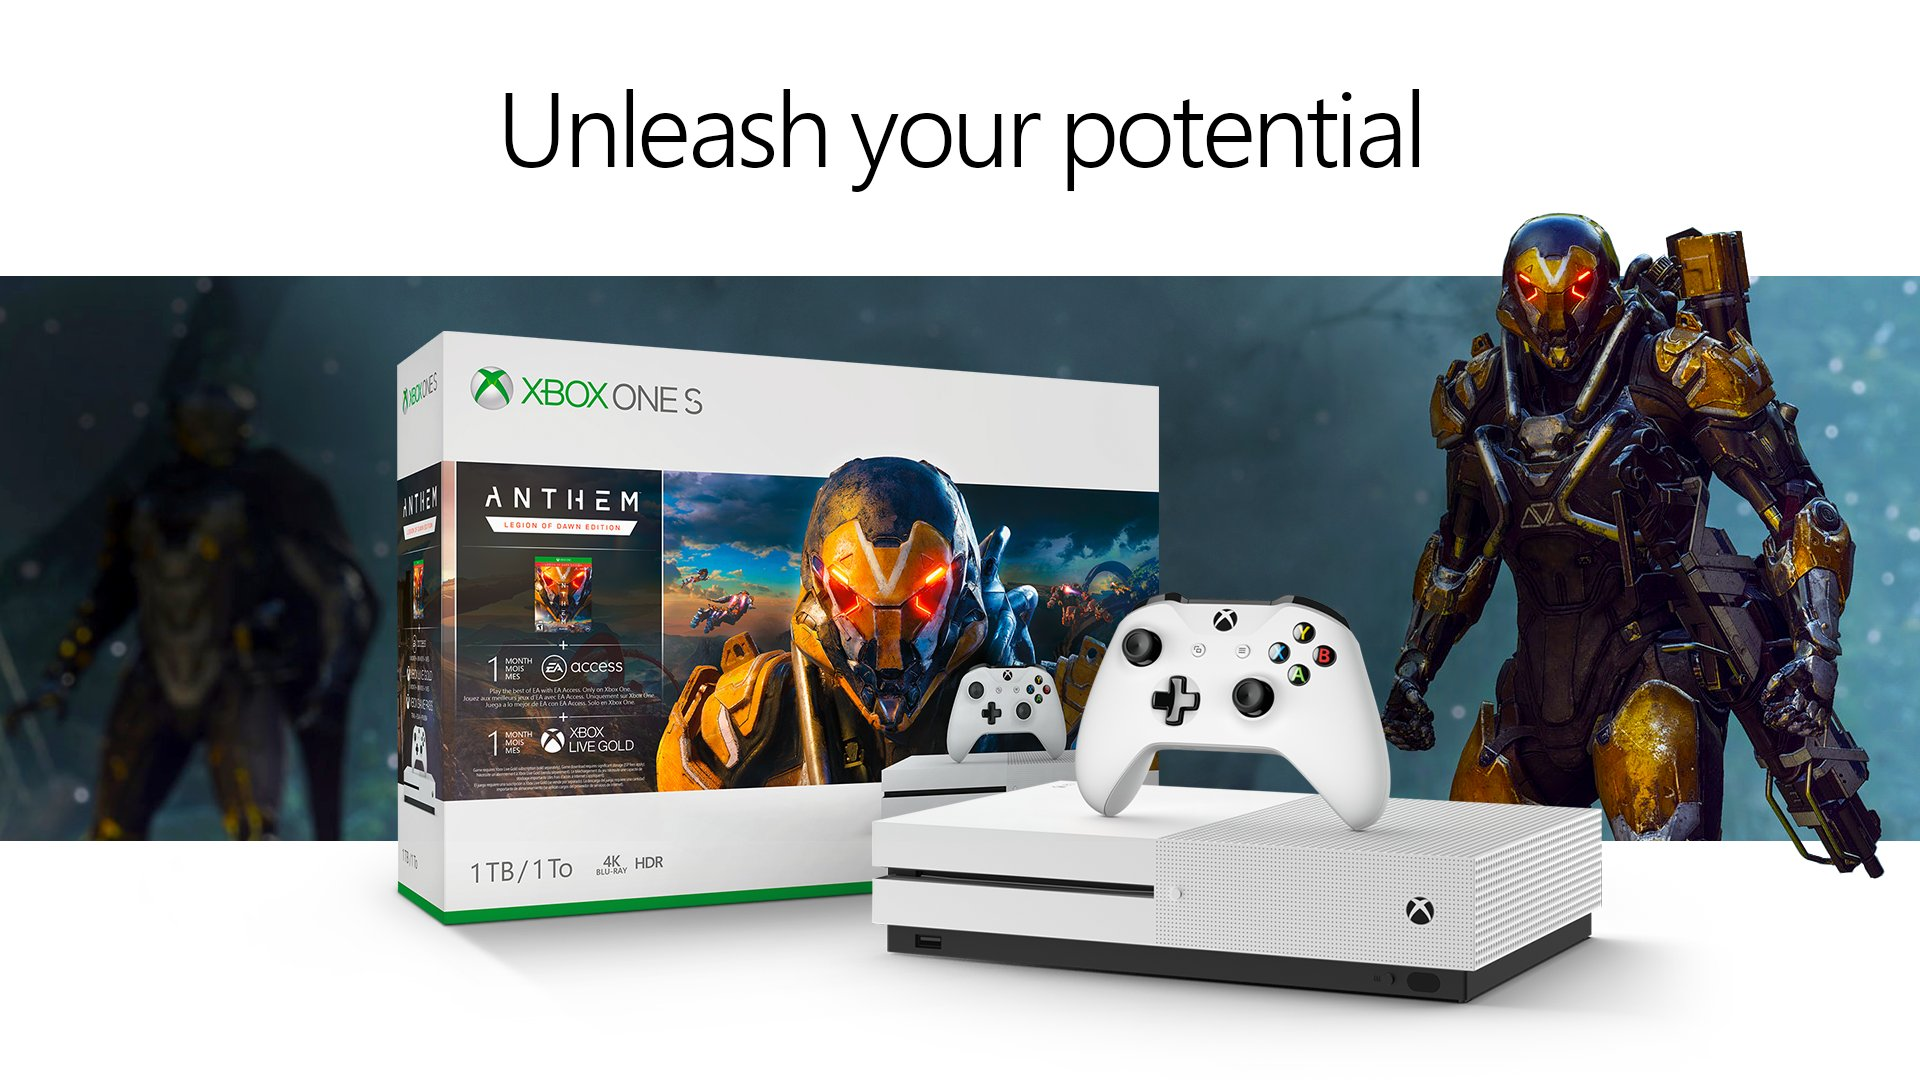 Xbox One S Anthem Bundle announced, will be available on February 15 1